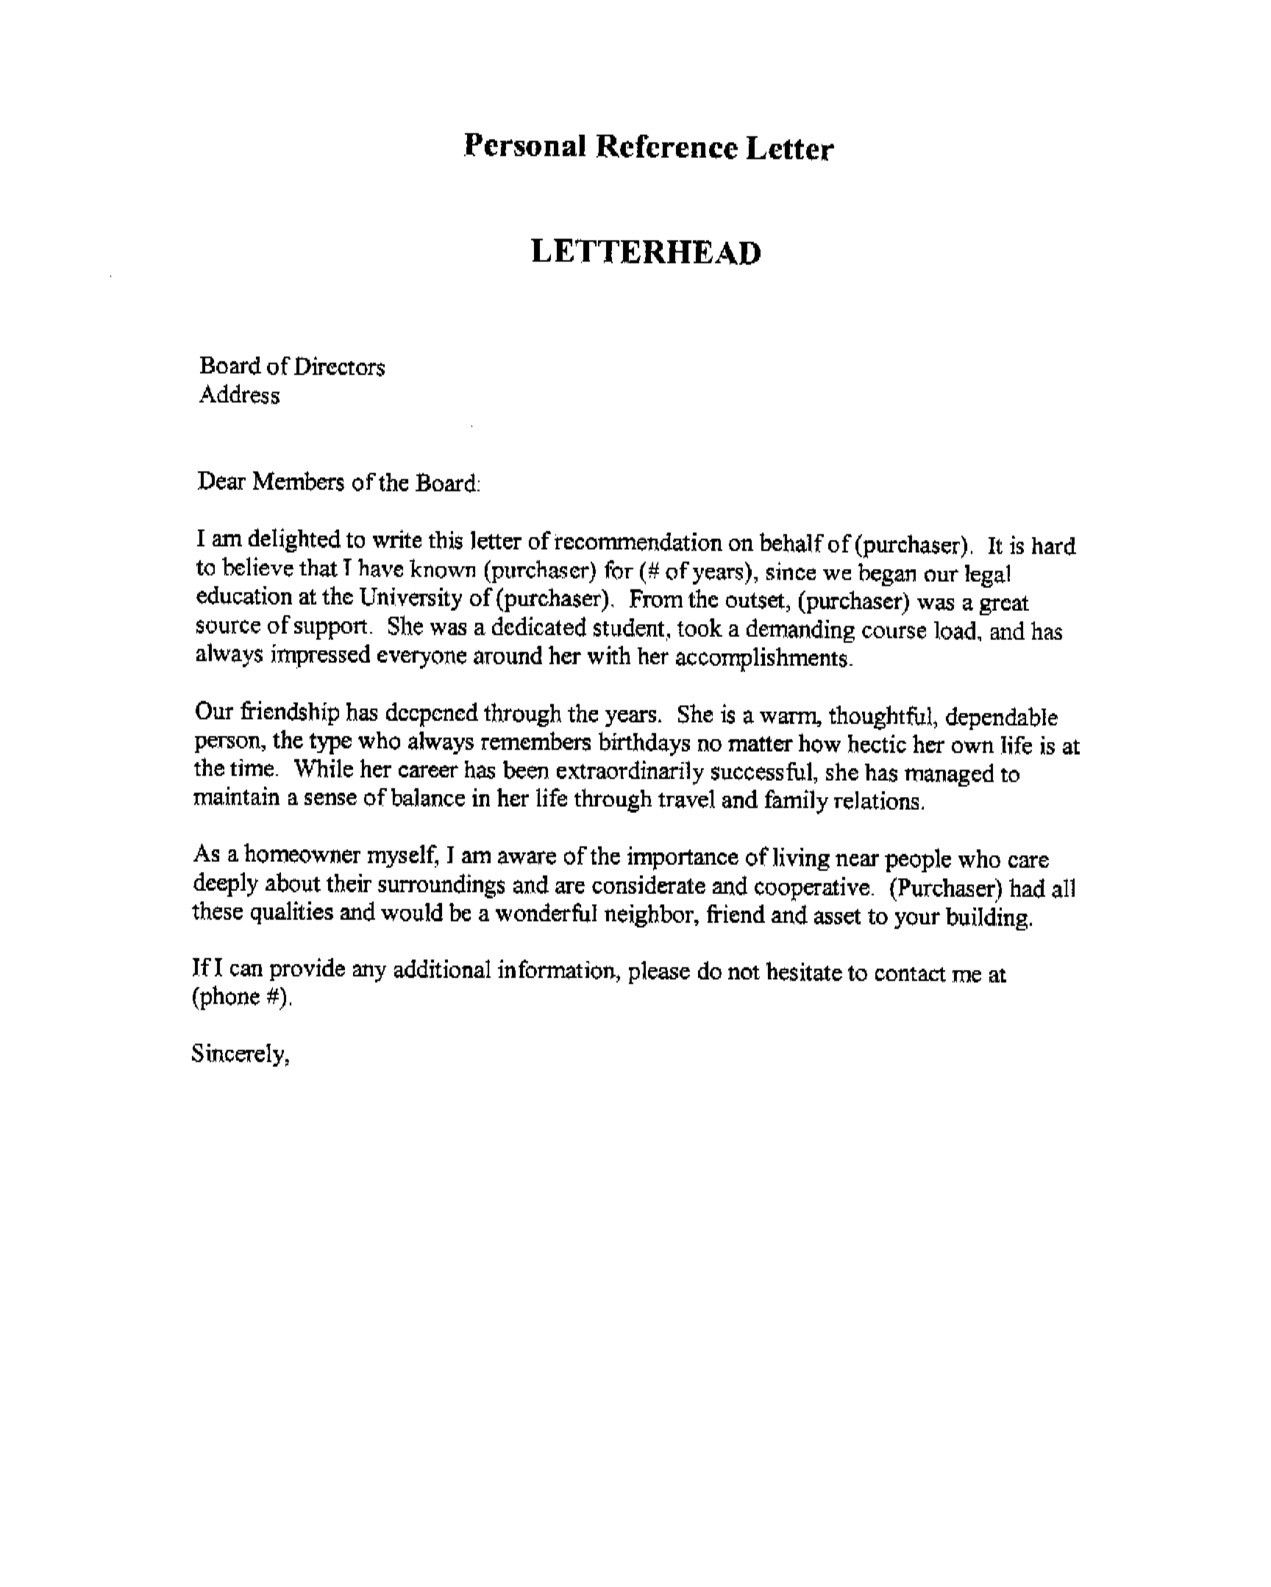 personal reference letter for a friend template examples job reference letters refrence job reference letter